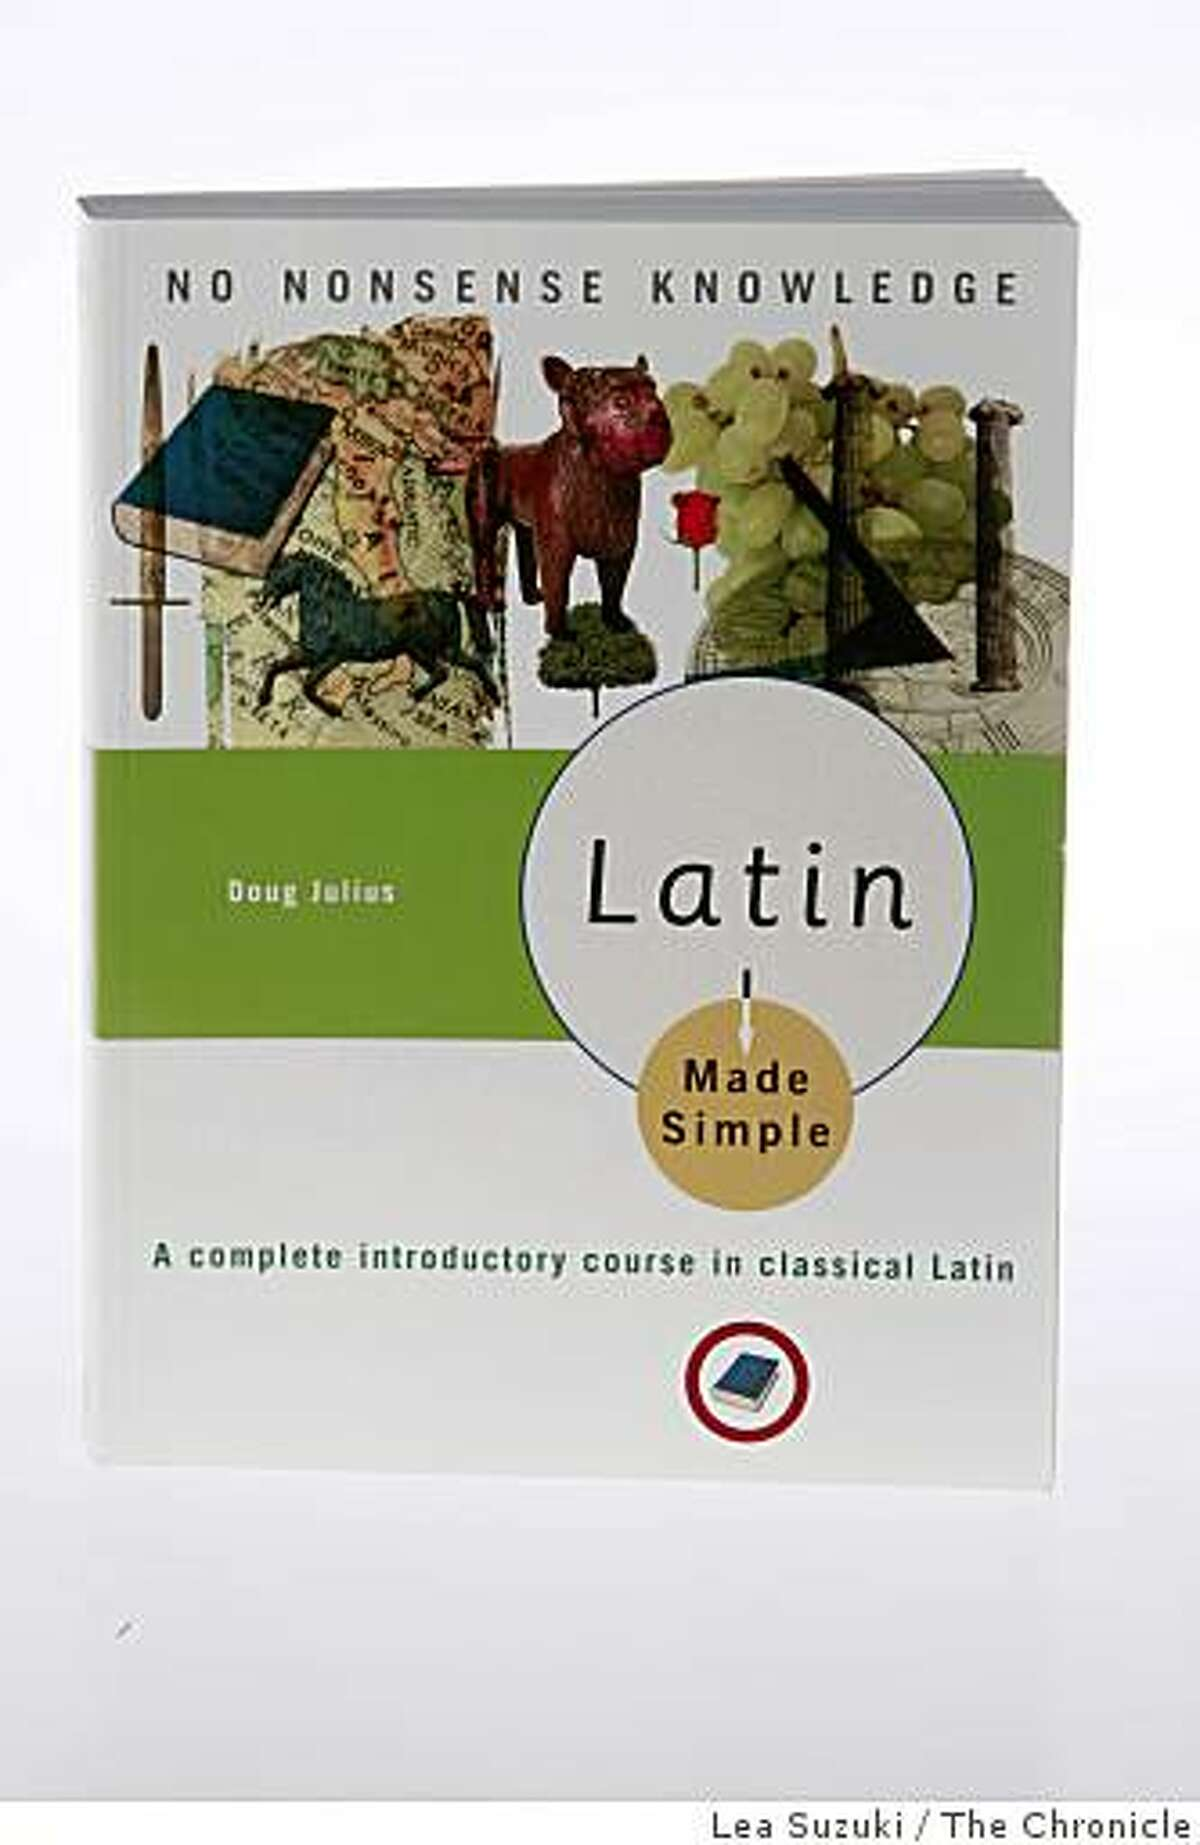 Latin Made Simple photographed in San Francisco, Calif. on Tuesday, February 3, 2009.